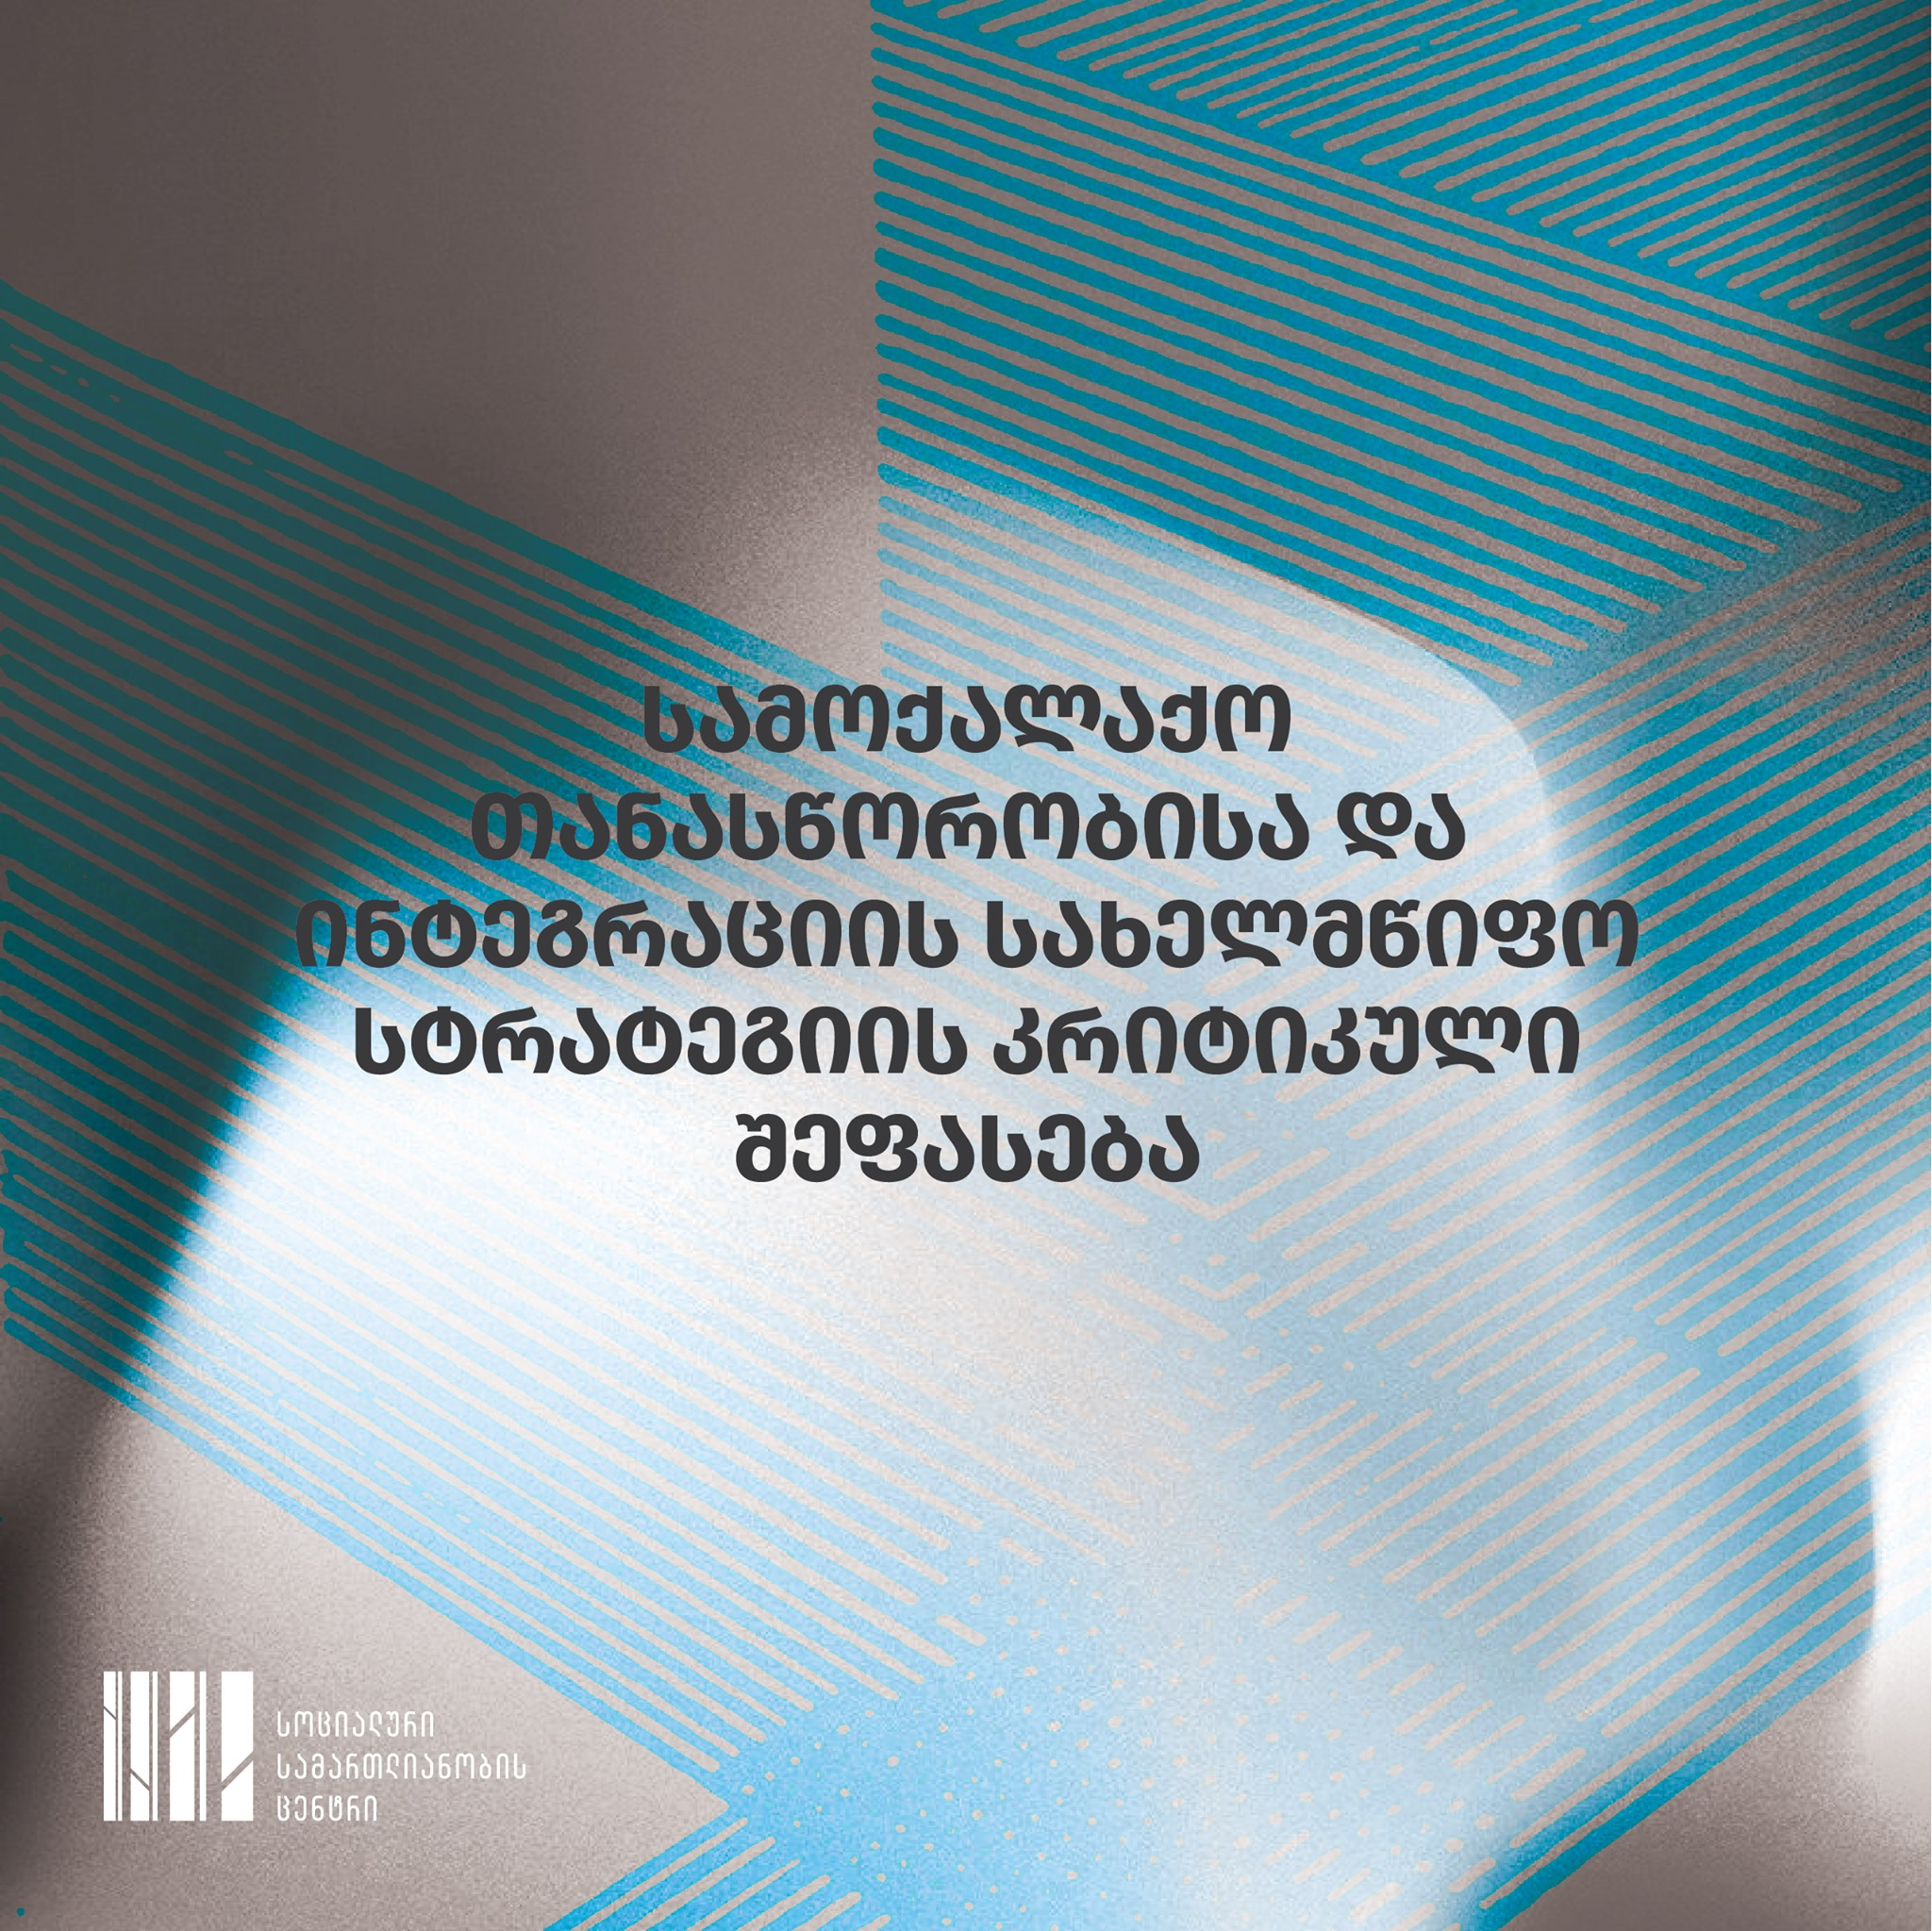 Critical analysis of the State Strategy for Civic Equality and Integration